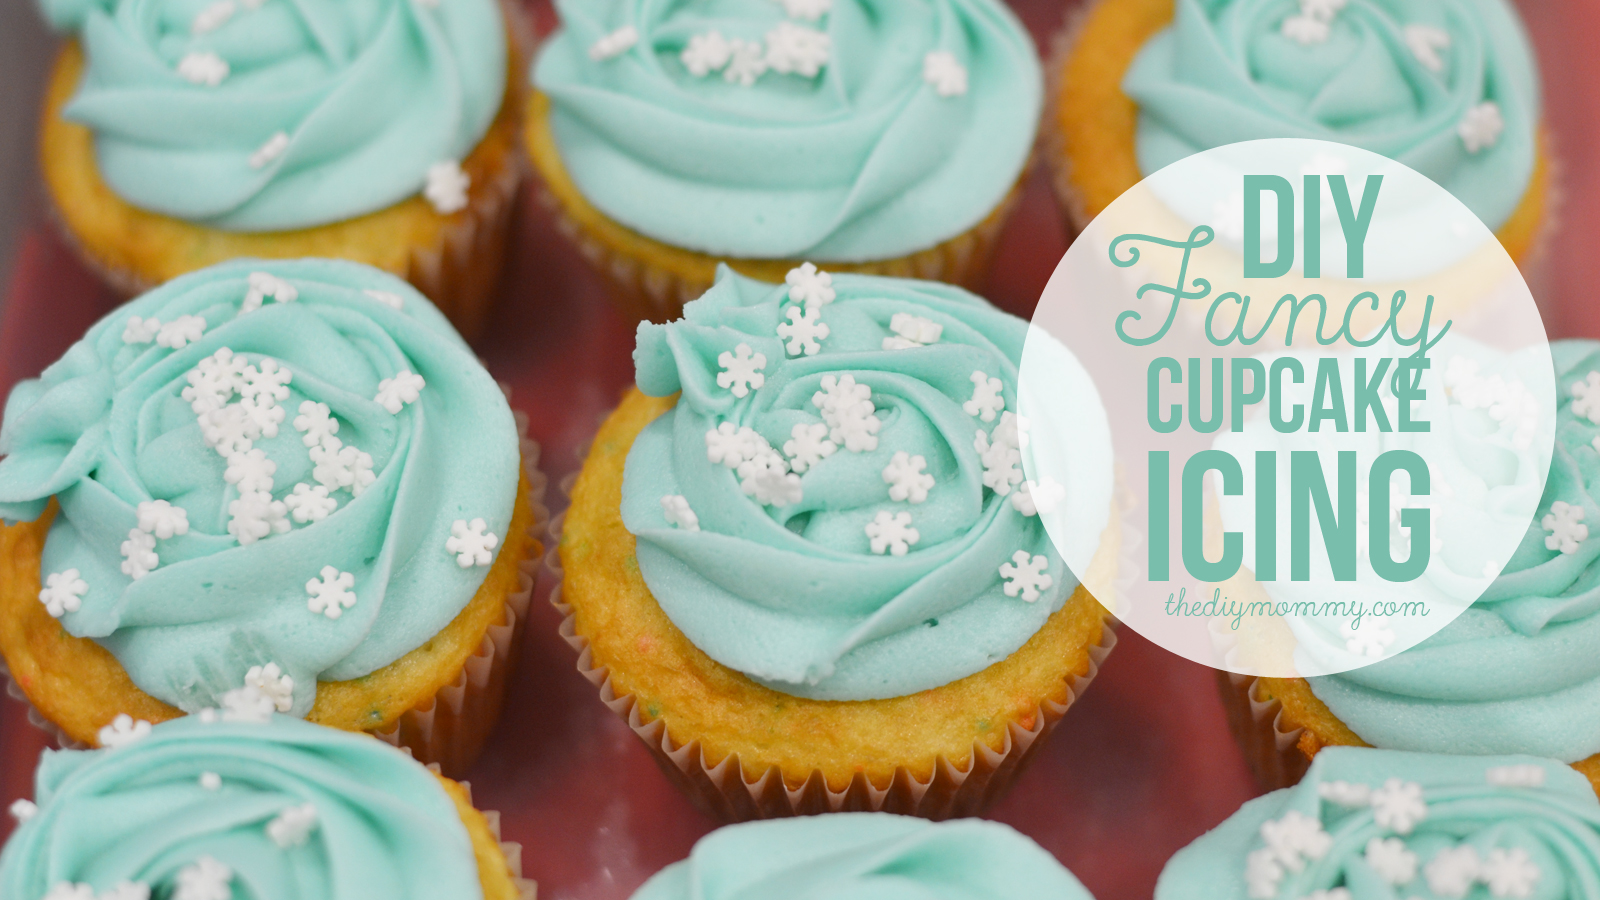 Video: How to make fancy iced cupcakes in 4 seconds or less!